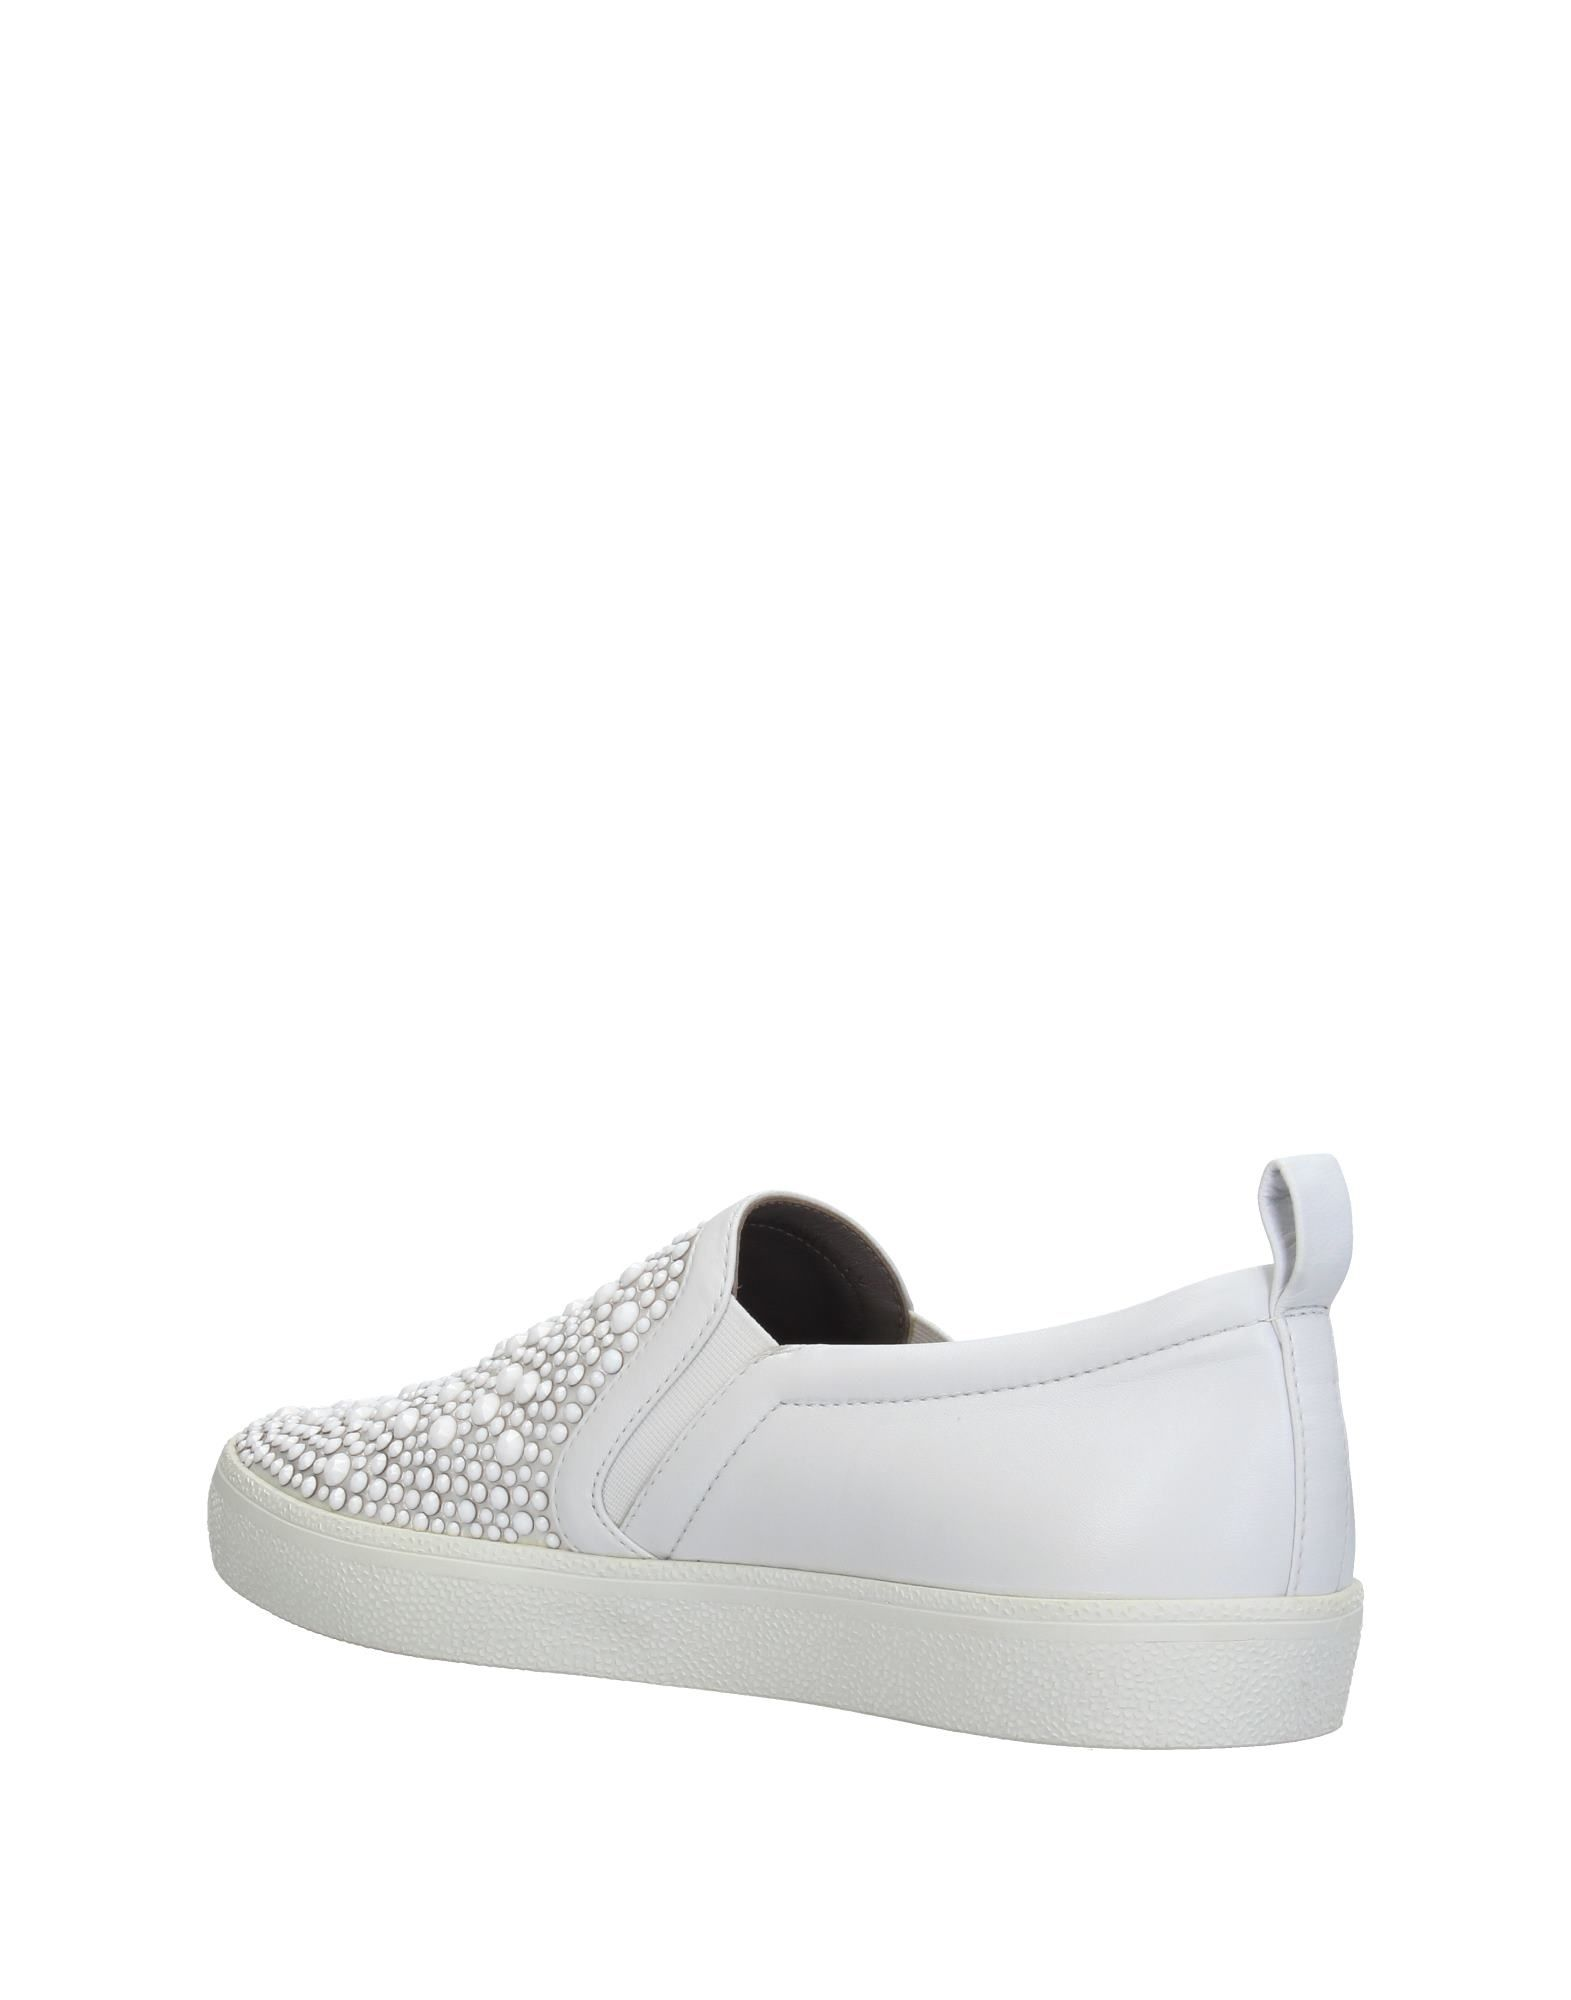 Sneakers Gina Femme - Sneakers Gina sur